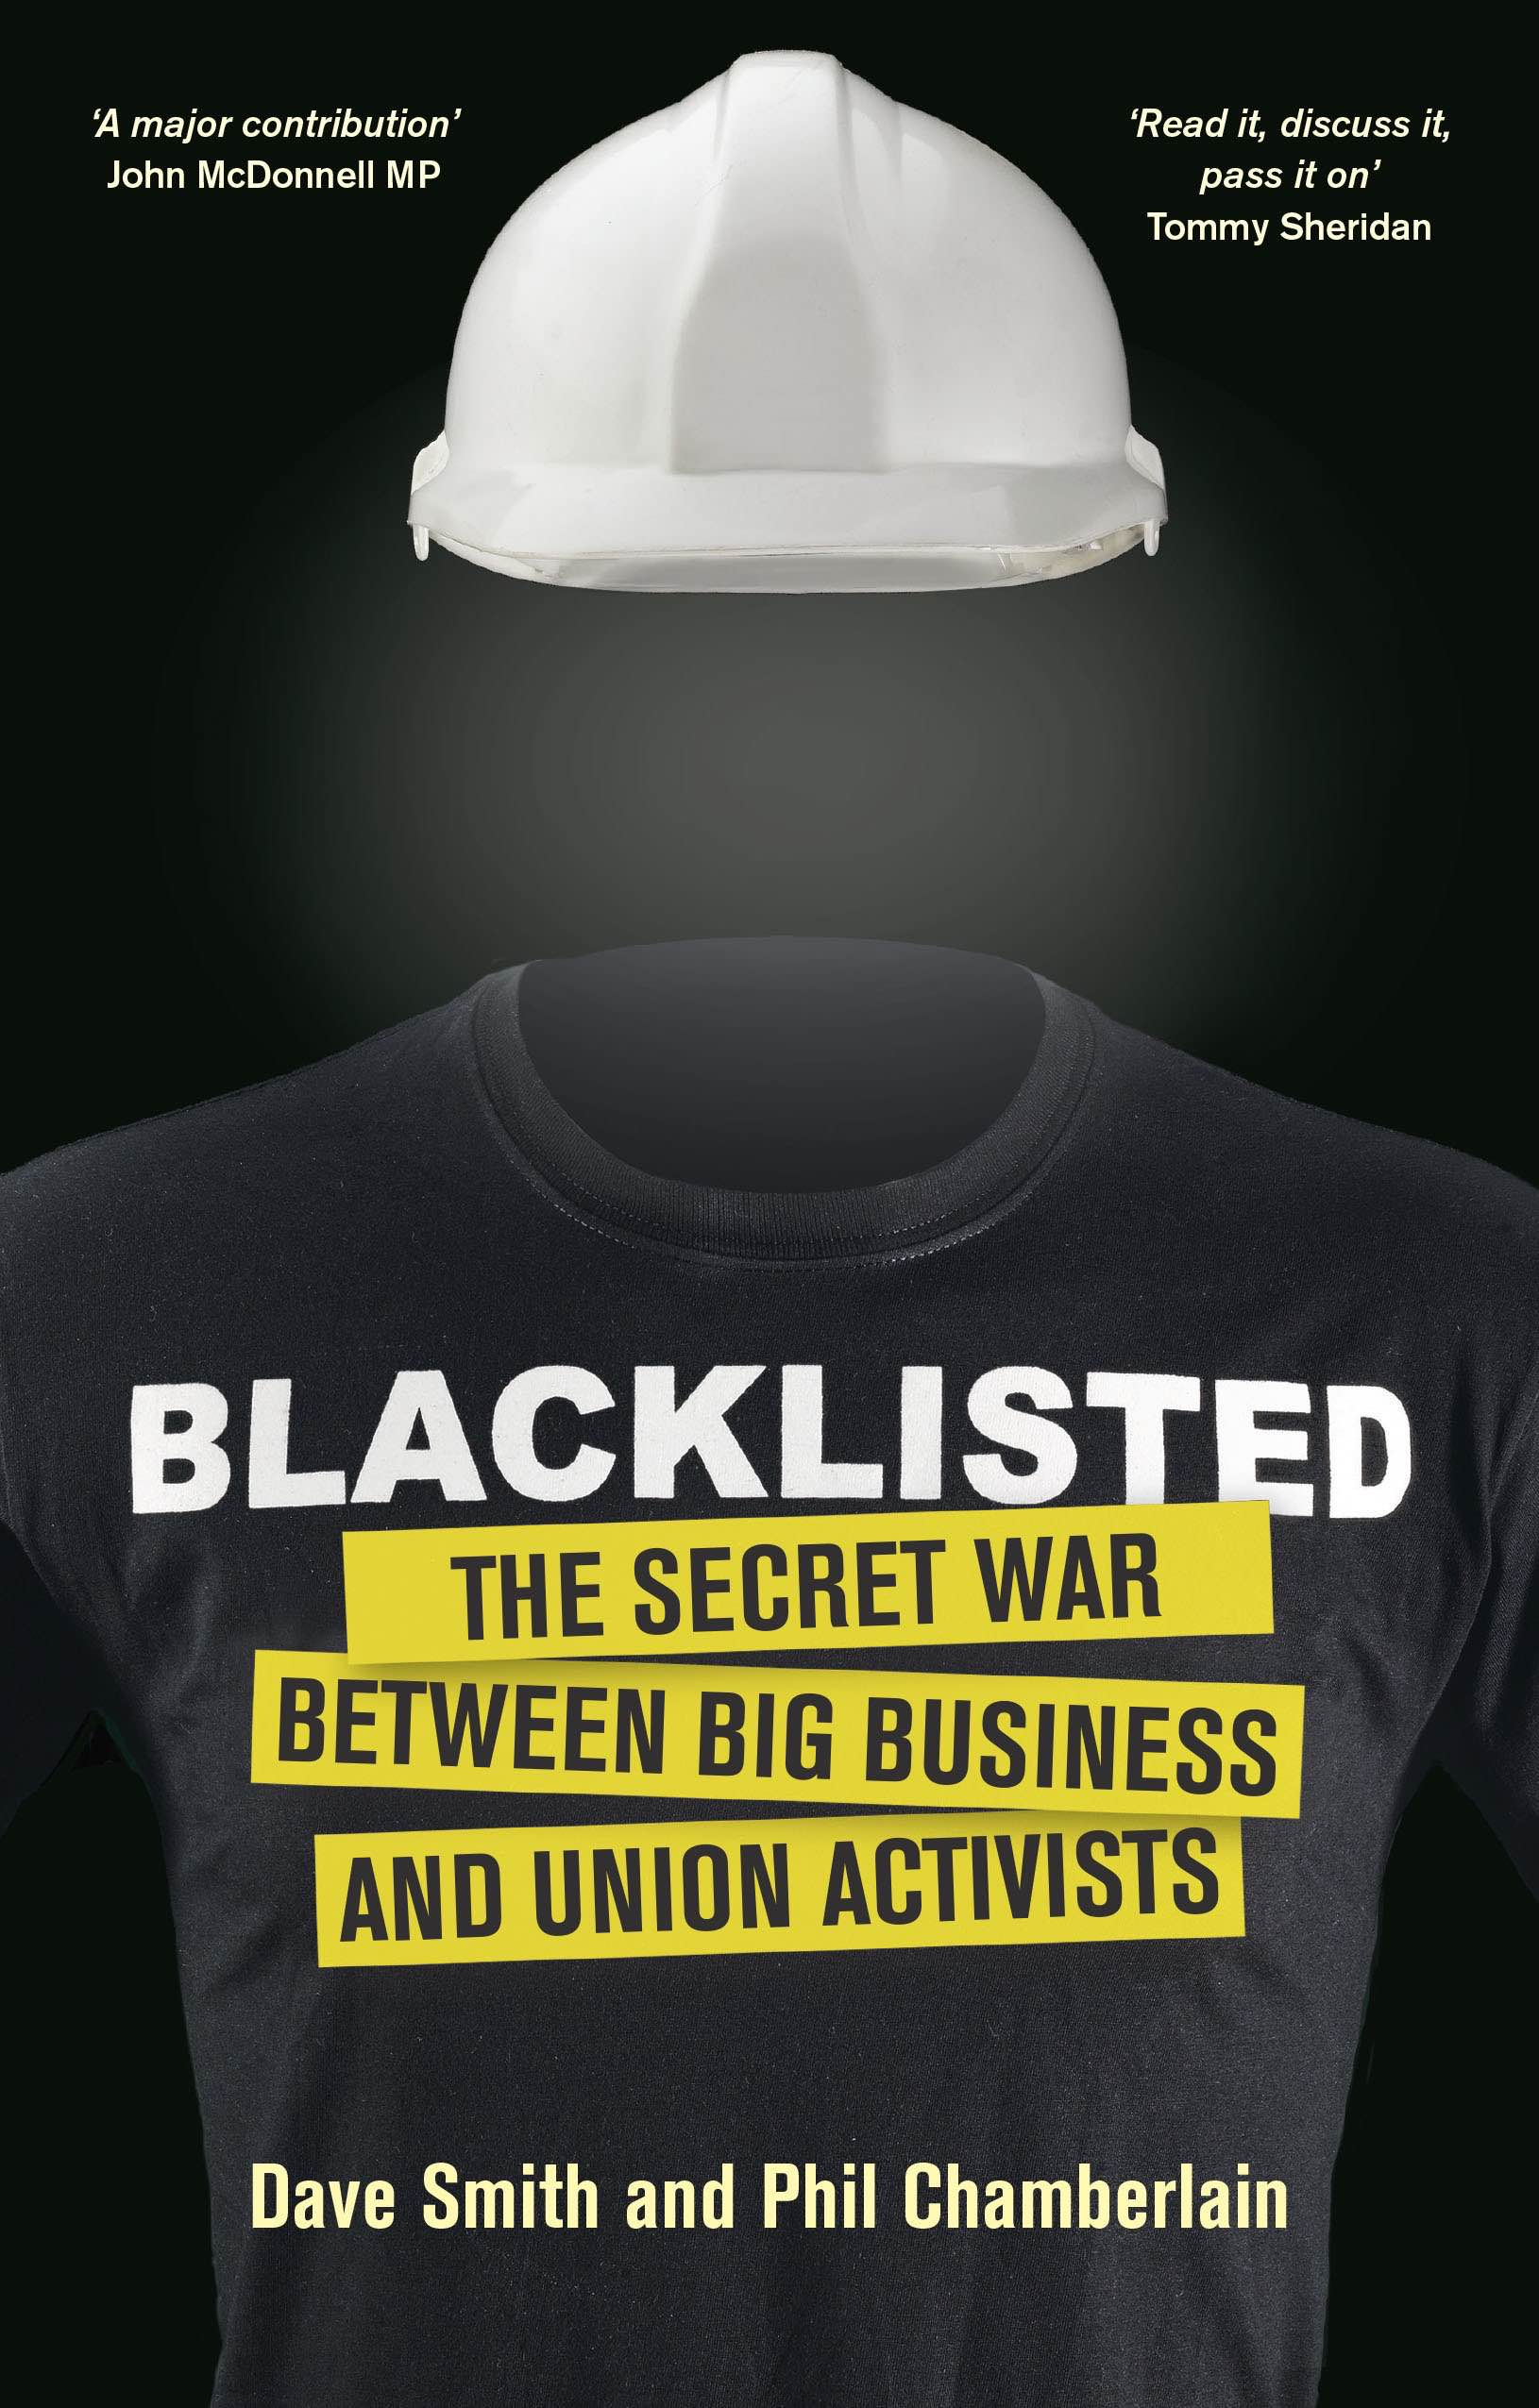 'Blacklisted' book cover - more www.newint.org/books/politics/blacklisted-secret-war